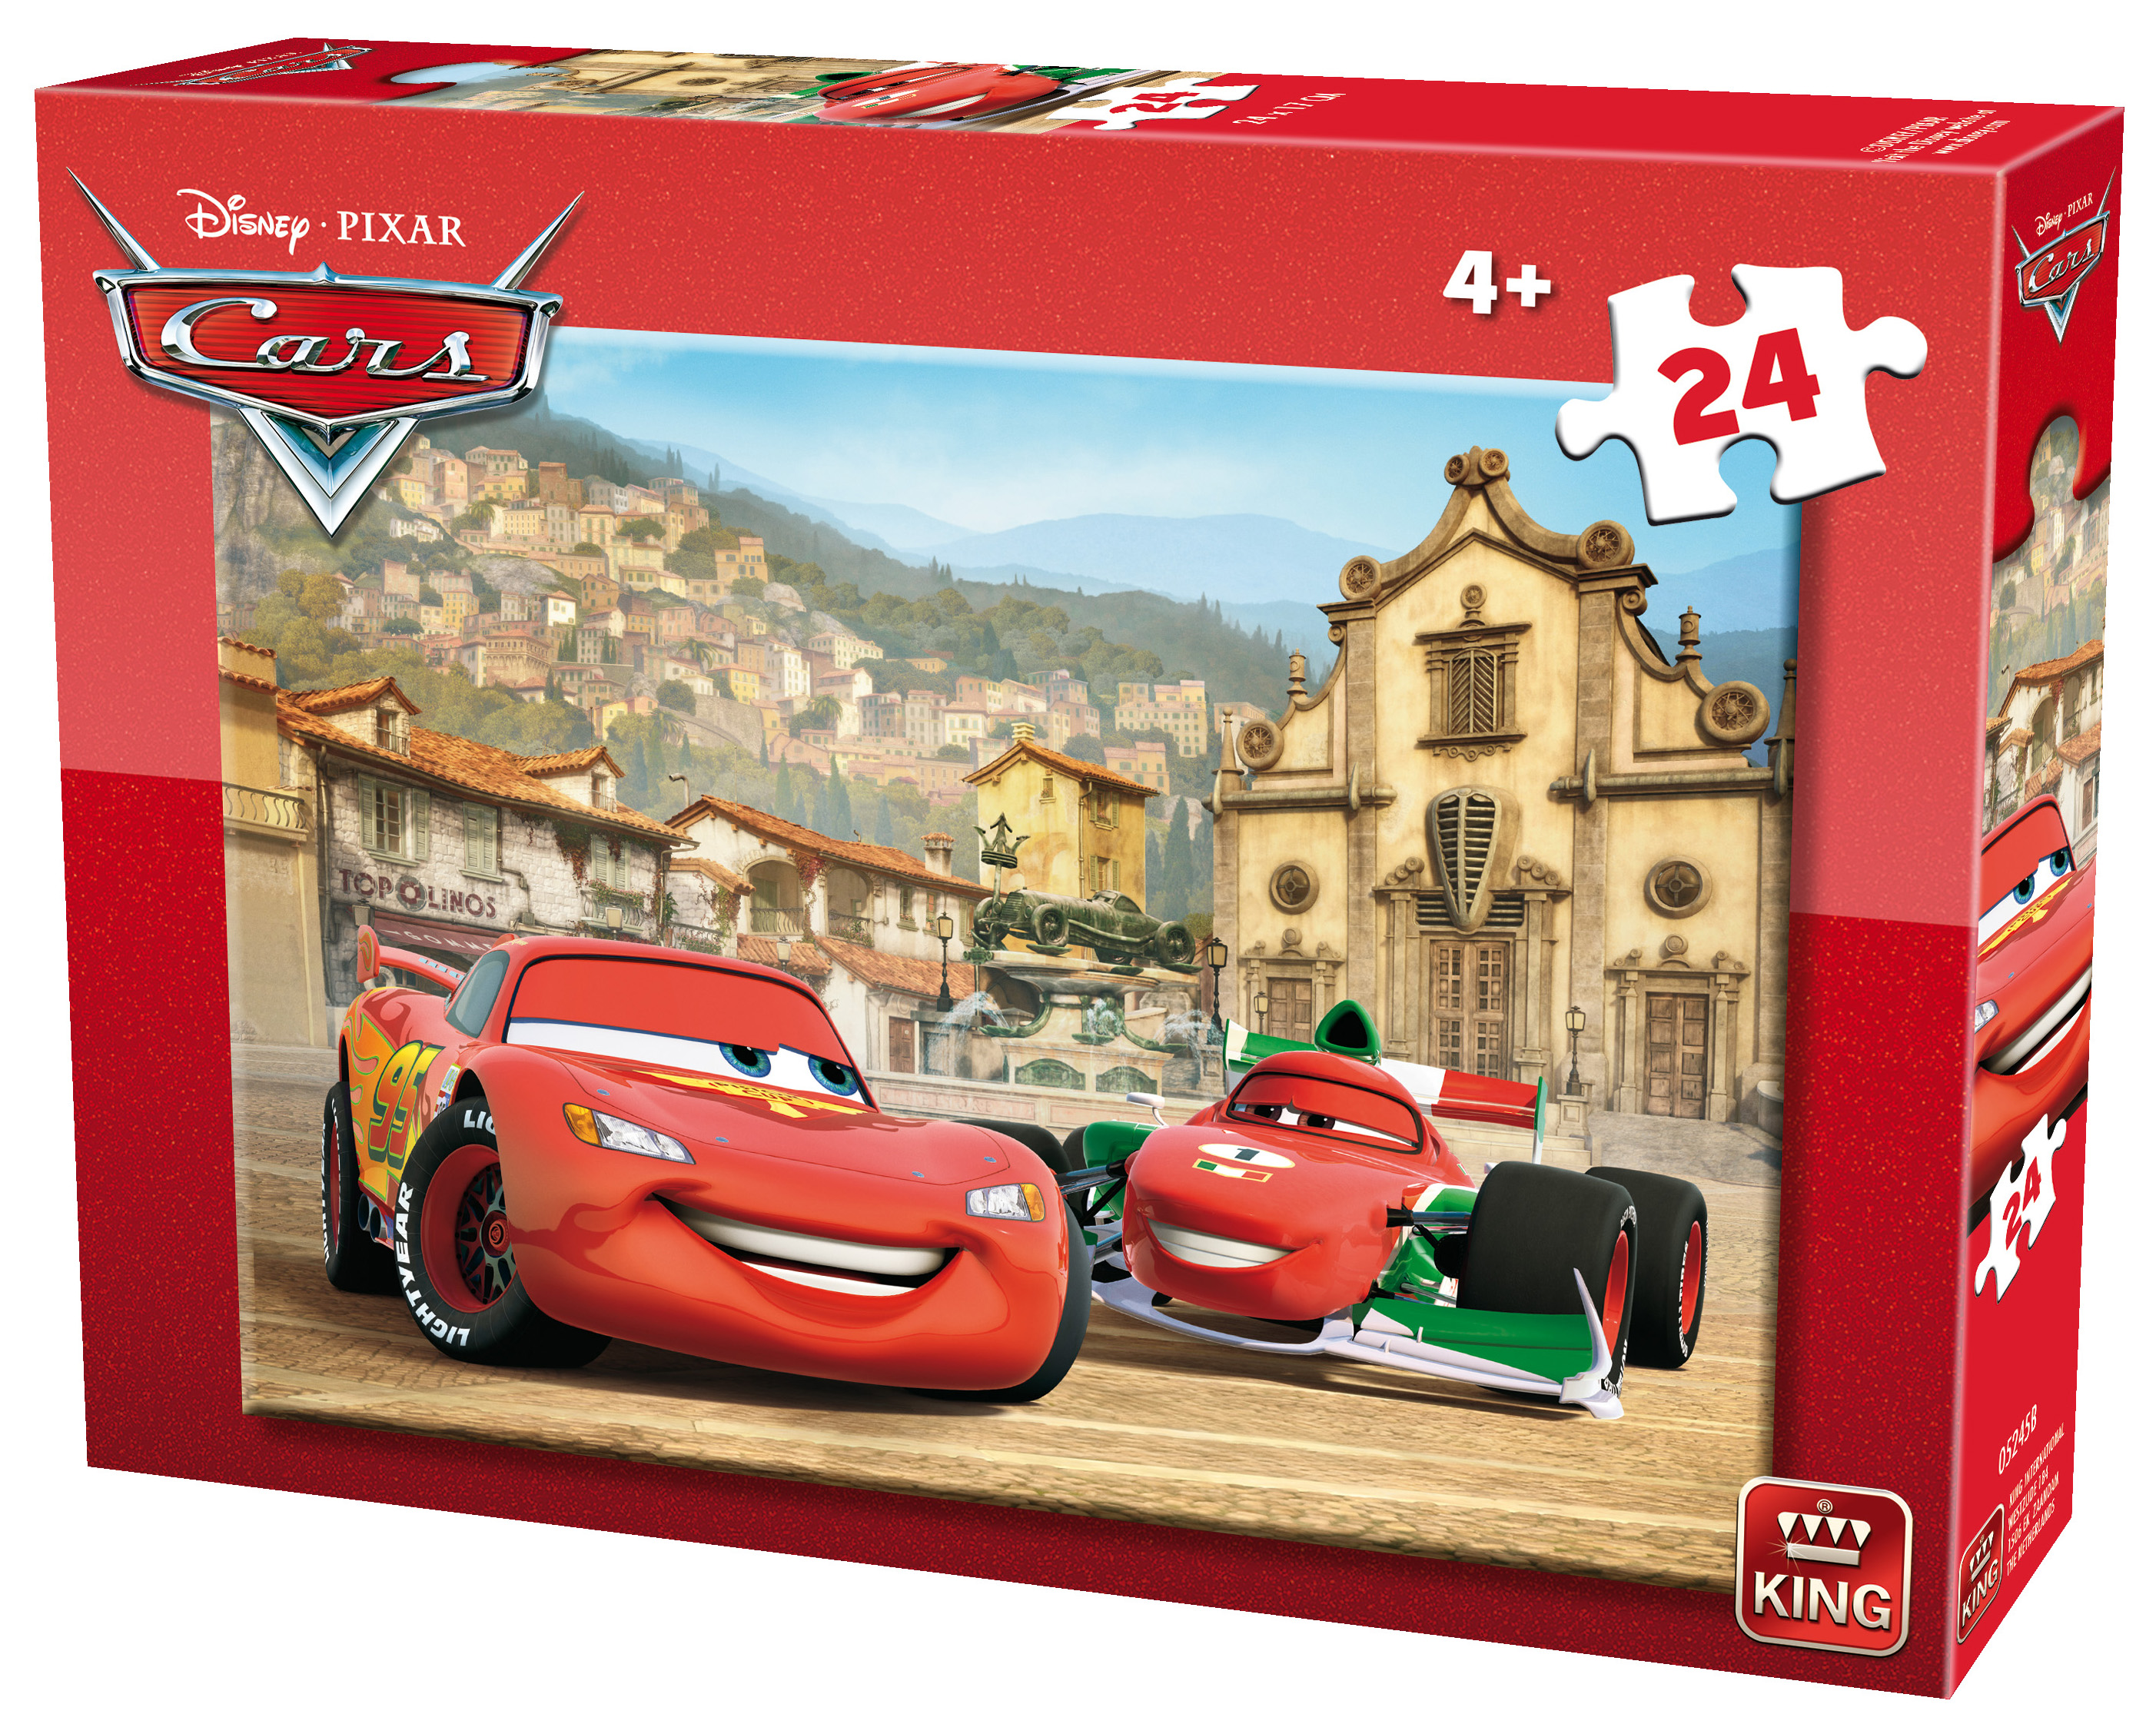 king-international-cars-24-teile-puzzle-king-puzzle-05245-b